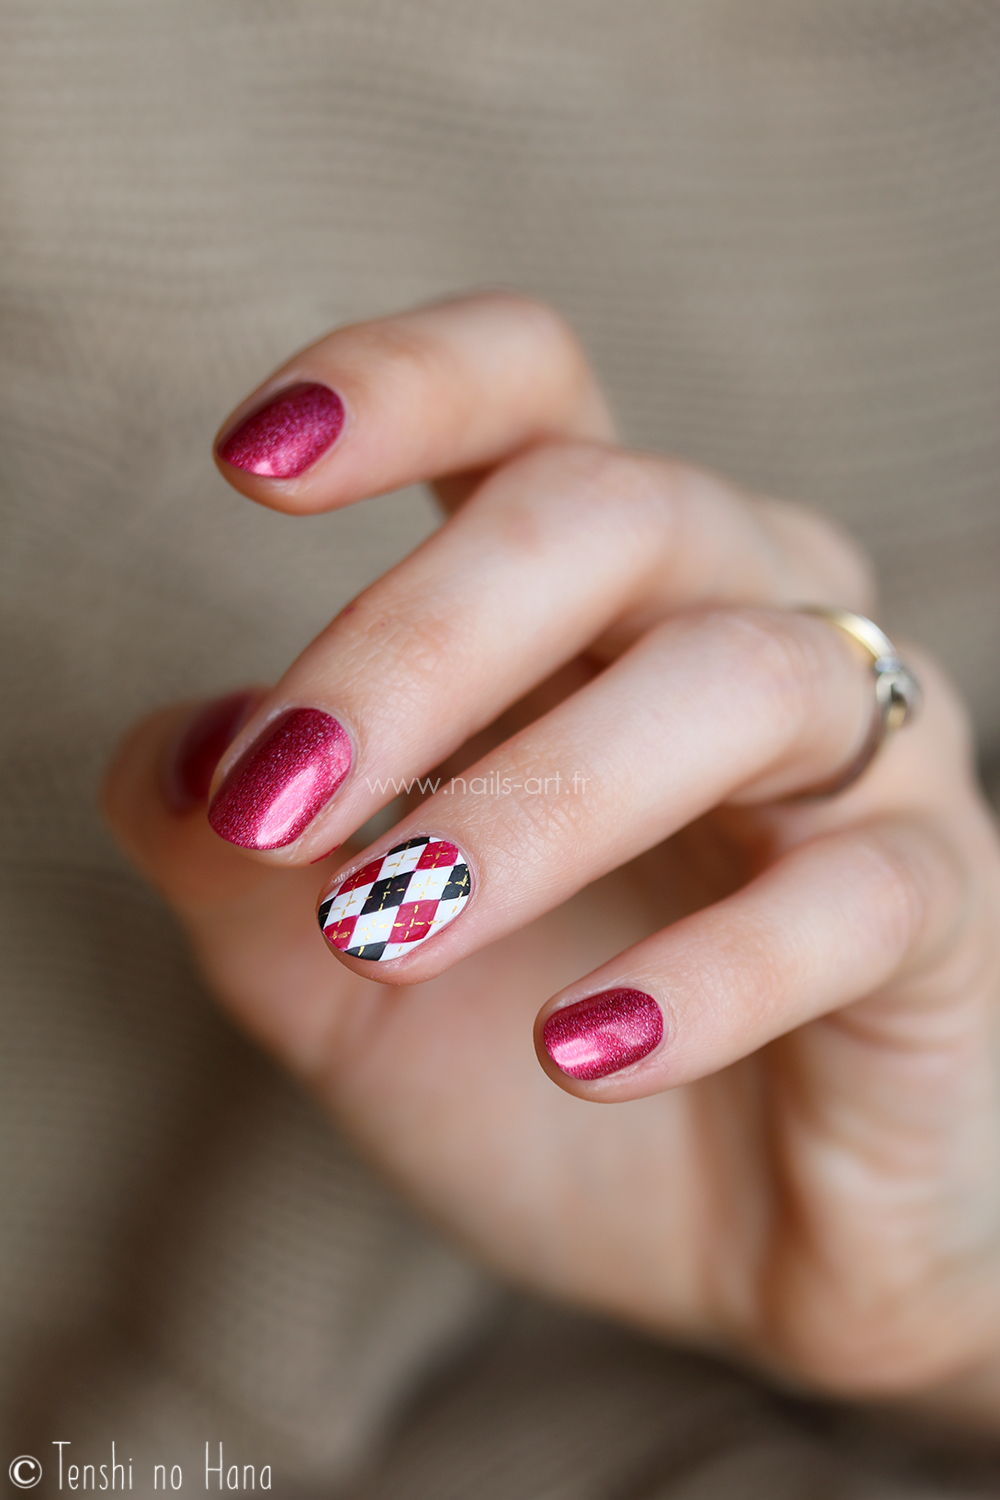 Www nail art com image collections nail art and nail design ideas www nail art in image collections nail art and nail design ideas www nails the nail prinsesfo Image collections